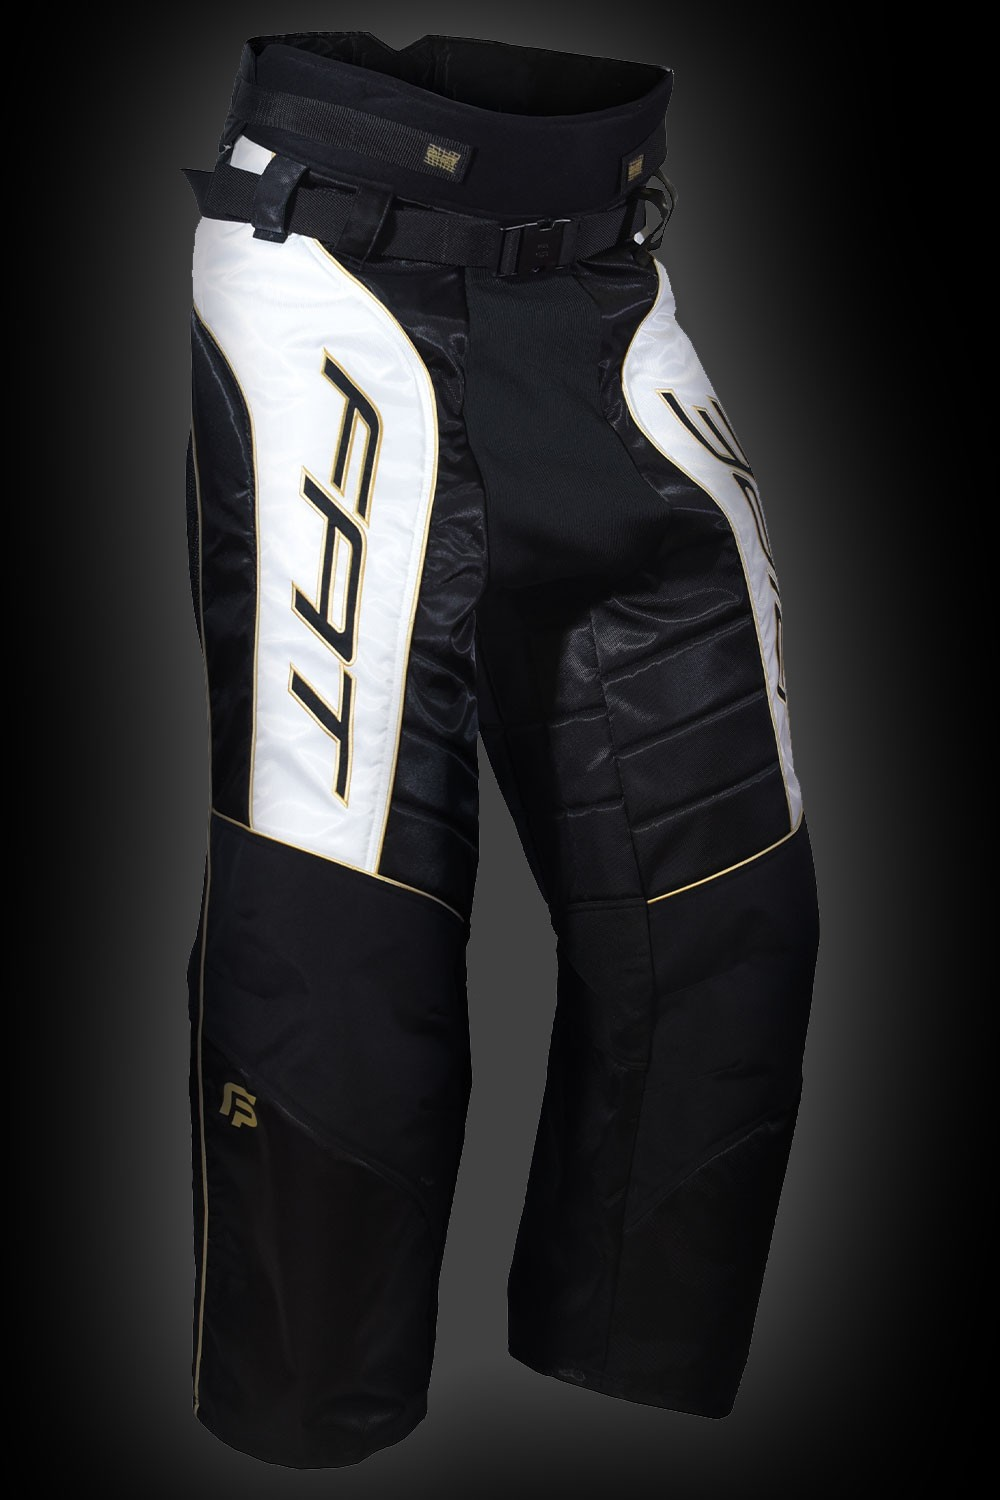 Fatpipe Goaliepants black